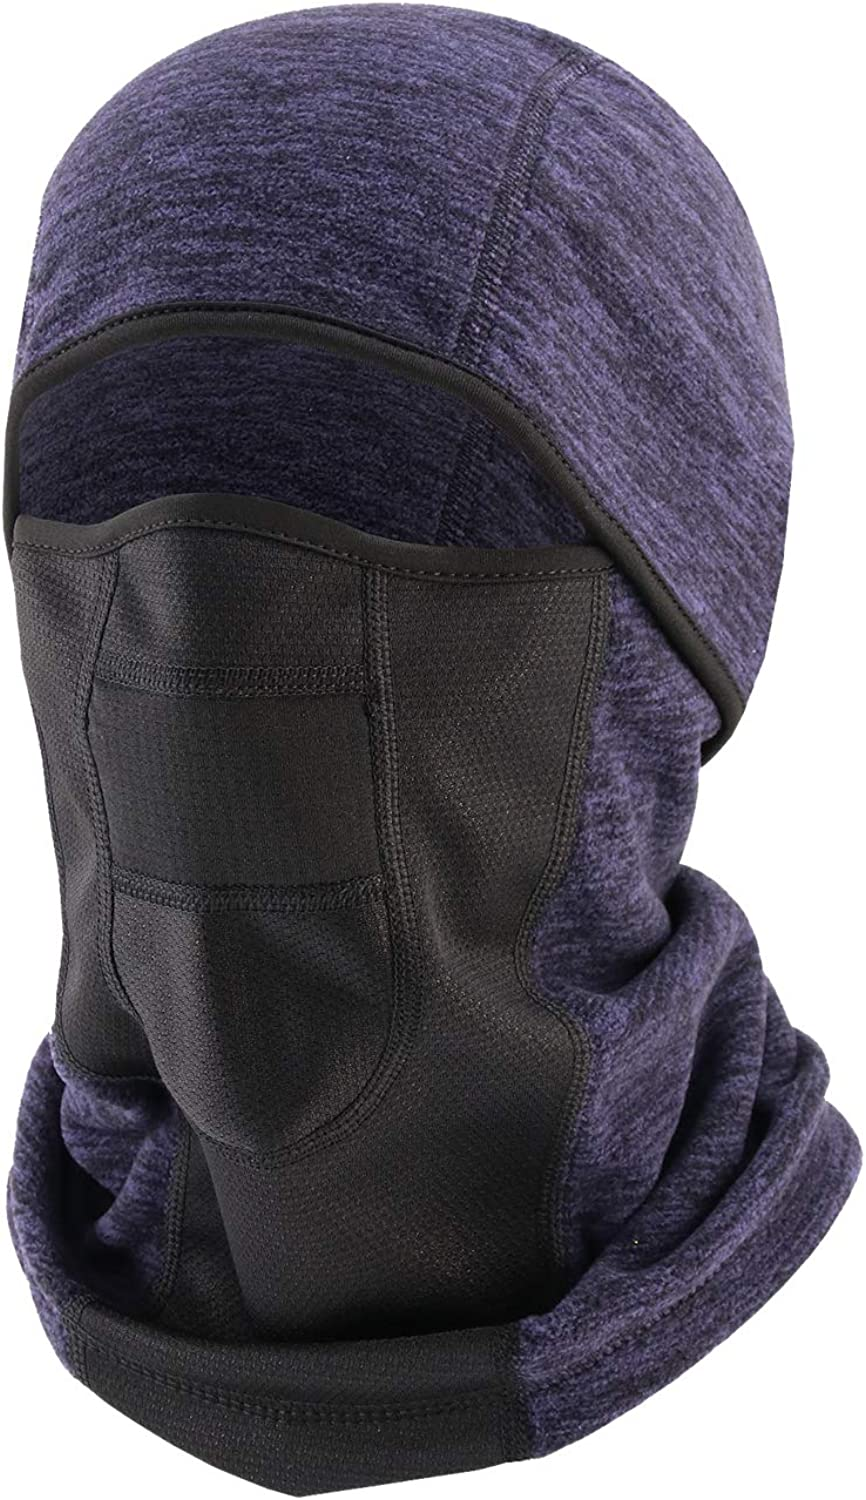 Balaclava Ski Mask - Windproof Winter Face Mask - Fleece Thermal Breathable Mask for Men Women - Skiing Snowboarding